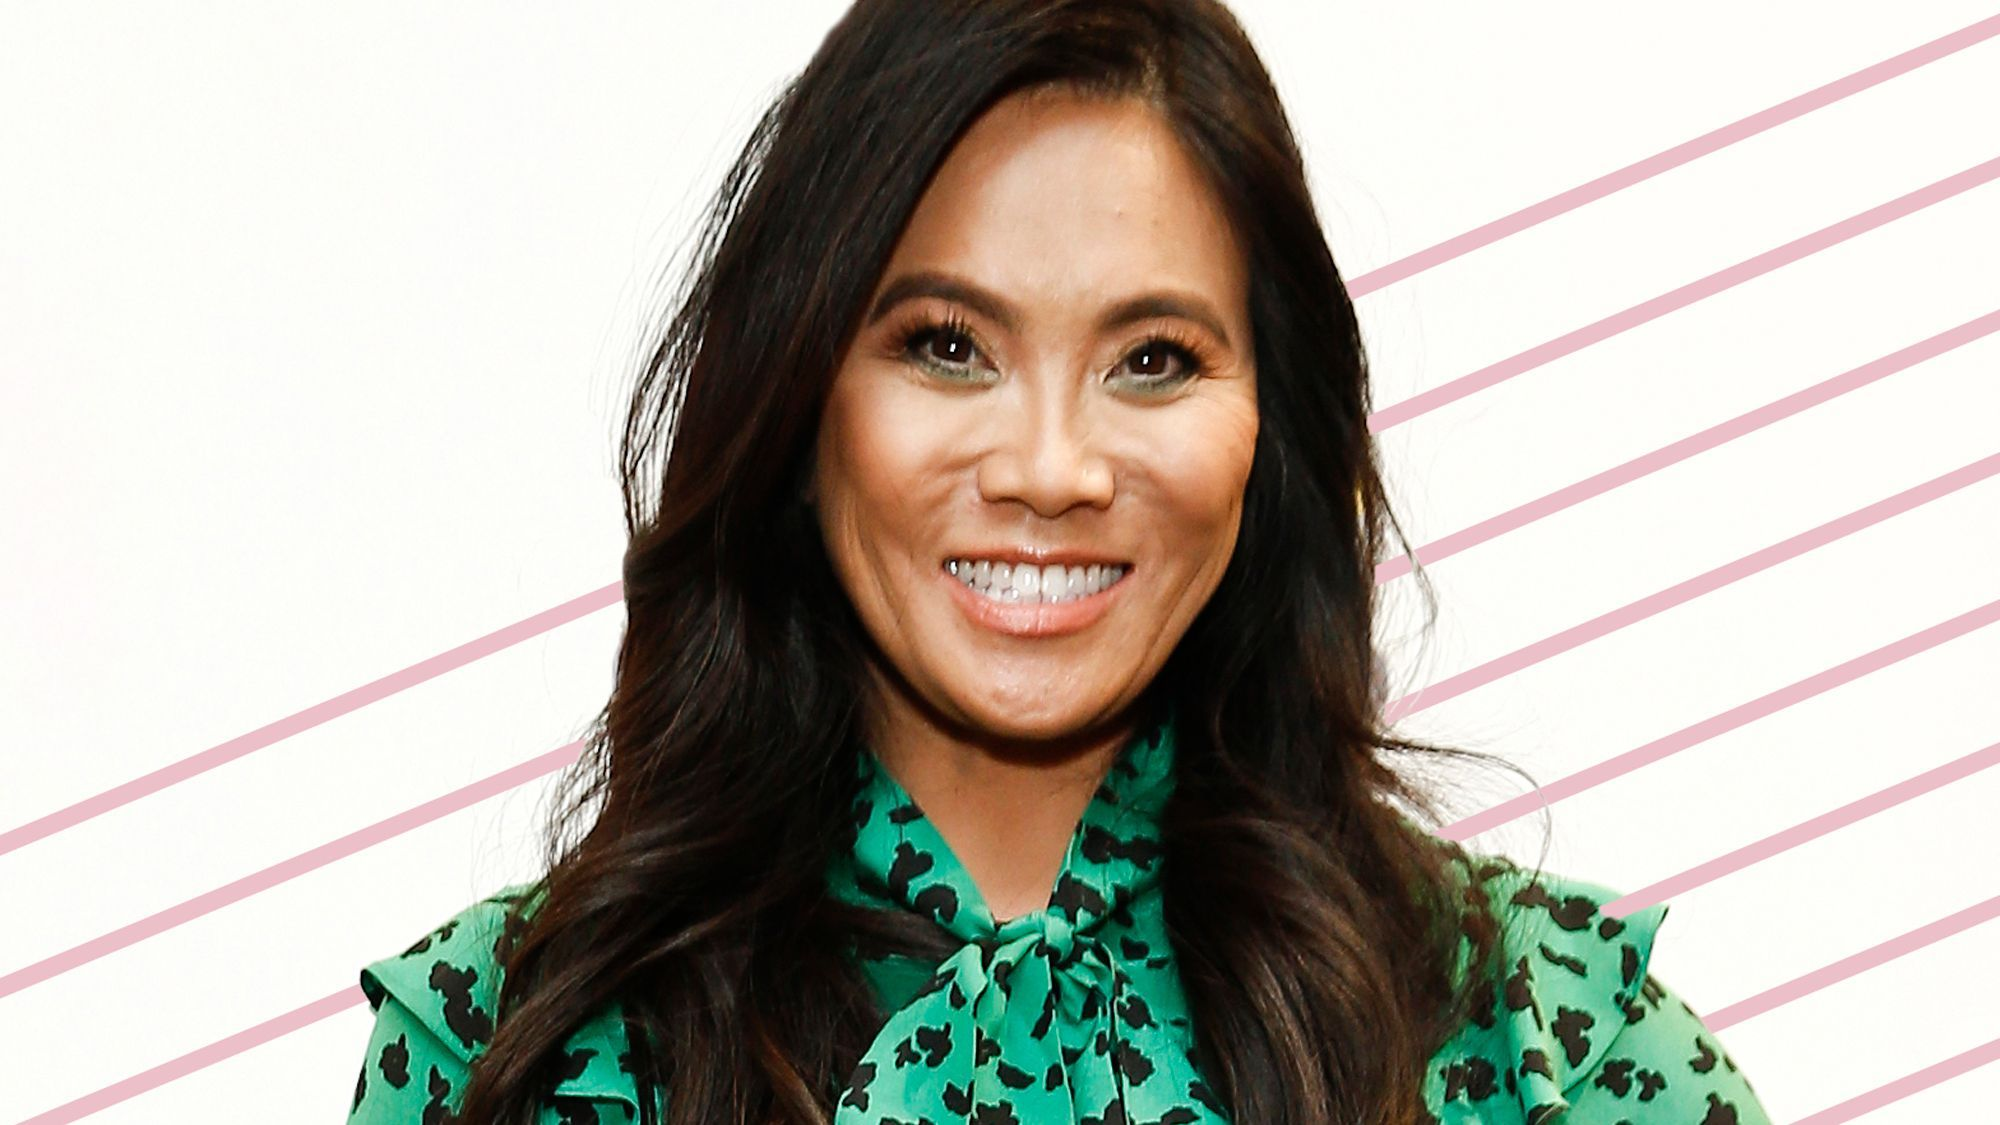 Dr Pimple Popper S Just Expanded Her Target Line Everything S On Sale Pimples Skin Care Collection Pimples Remedies